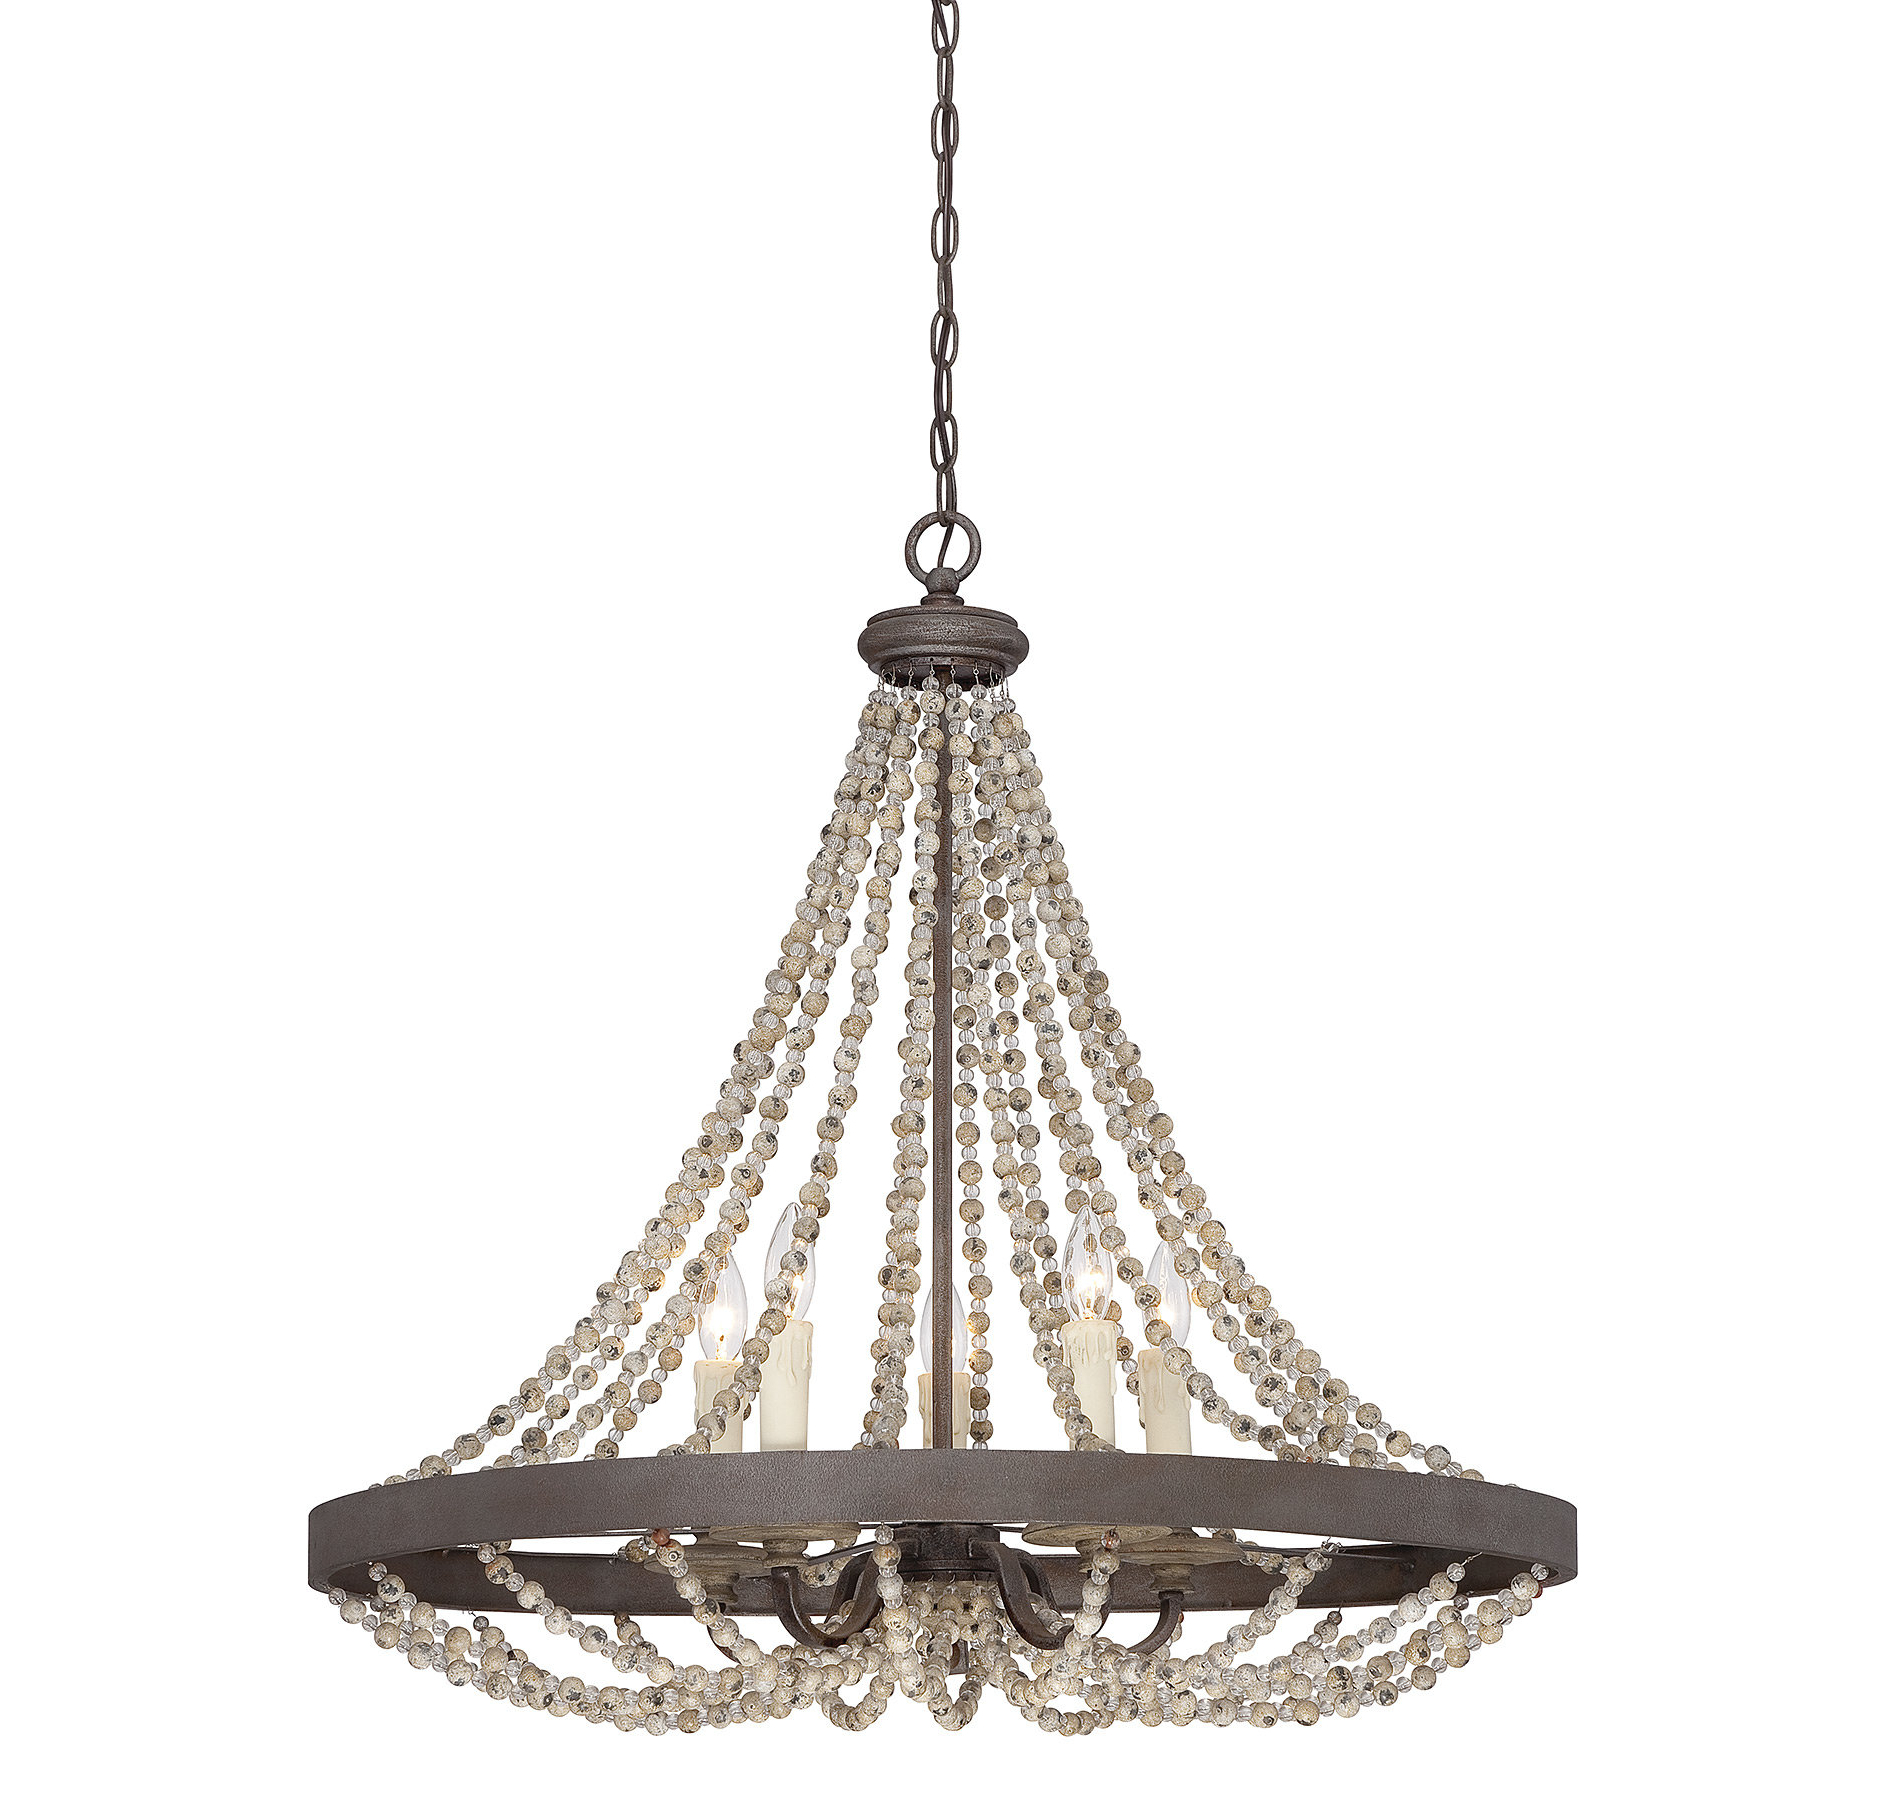 Duron 5 Light Empire Chandeliers Inside 2020 Ladonna 5 Light Novelty Chandelier (Gallery 6 of 20)